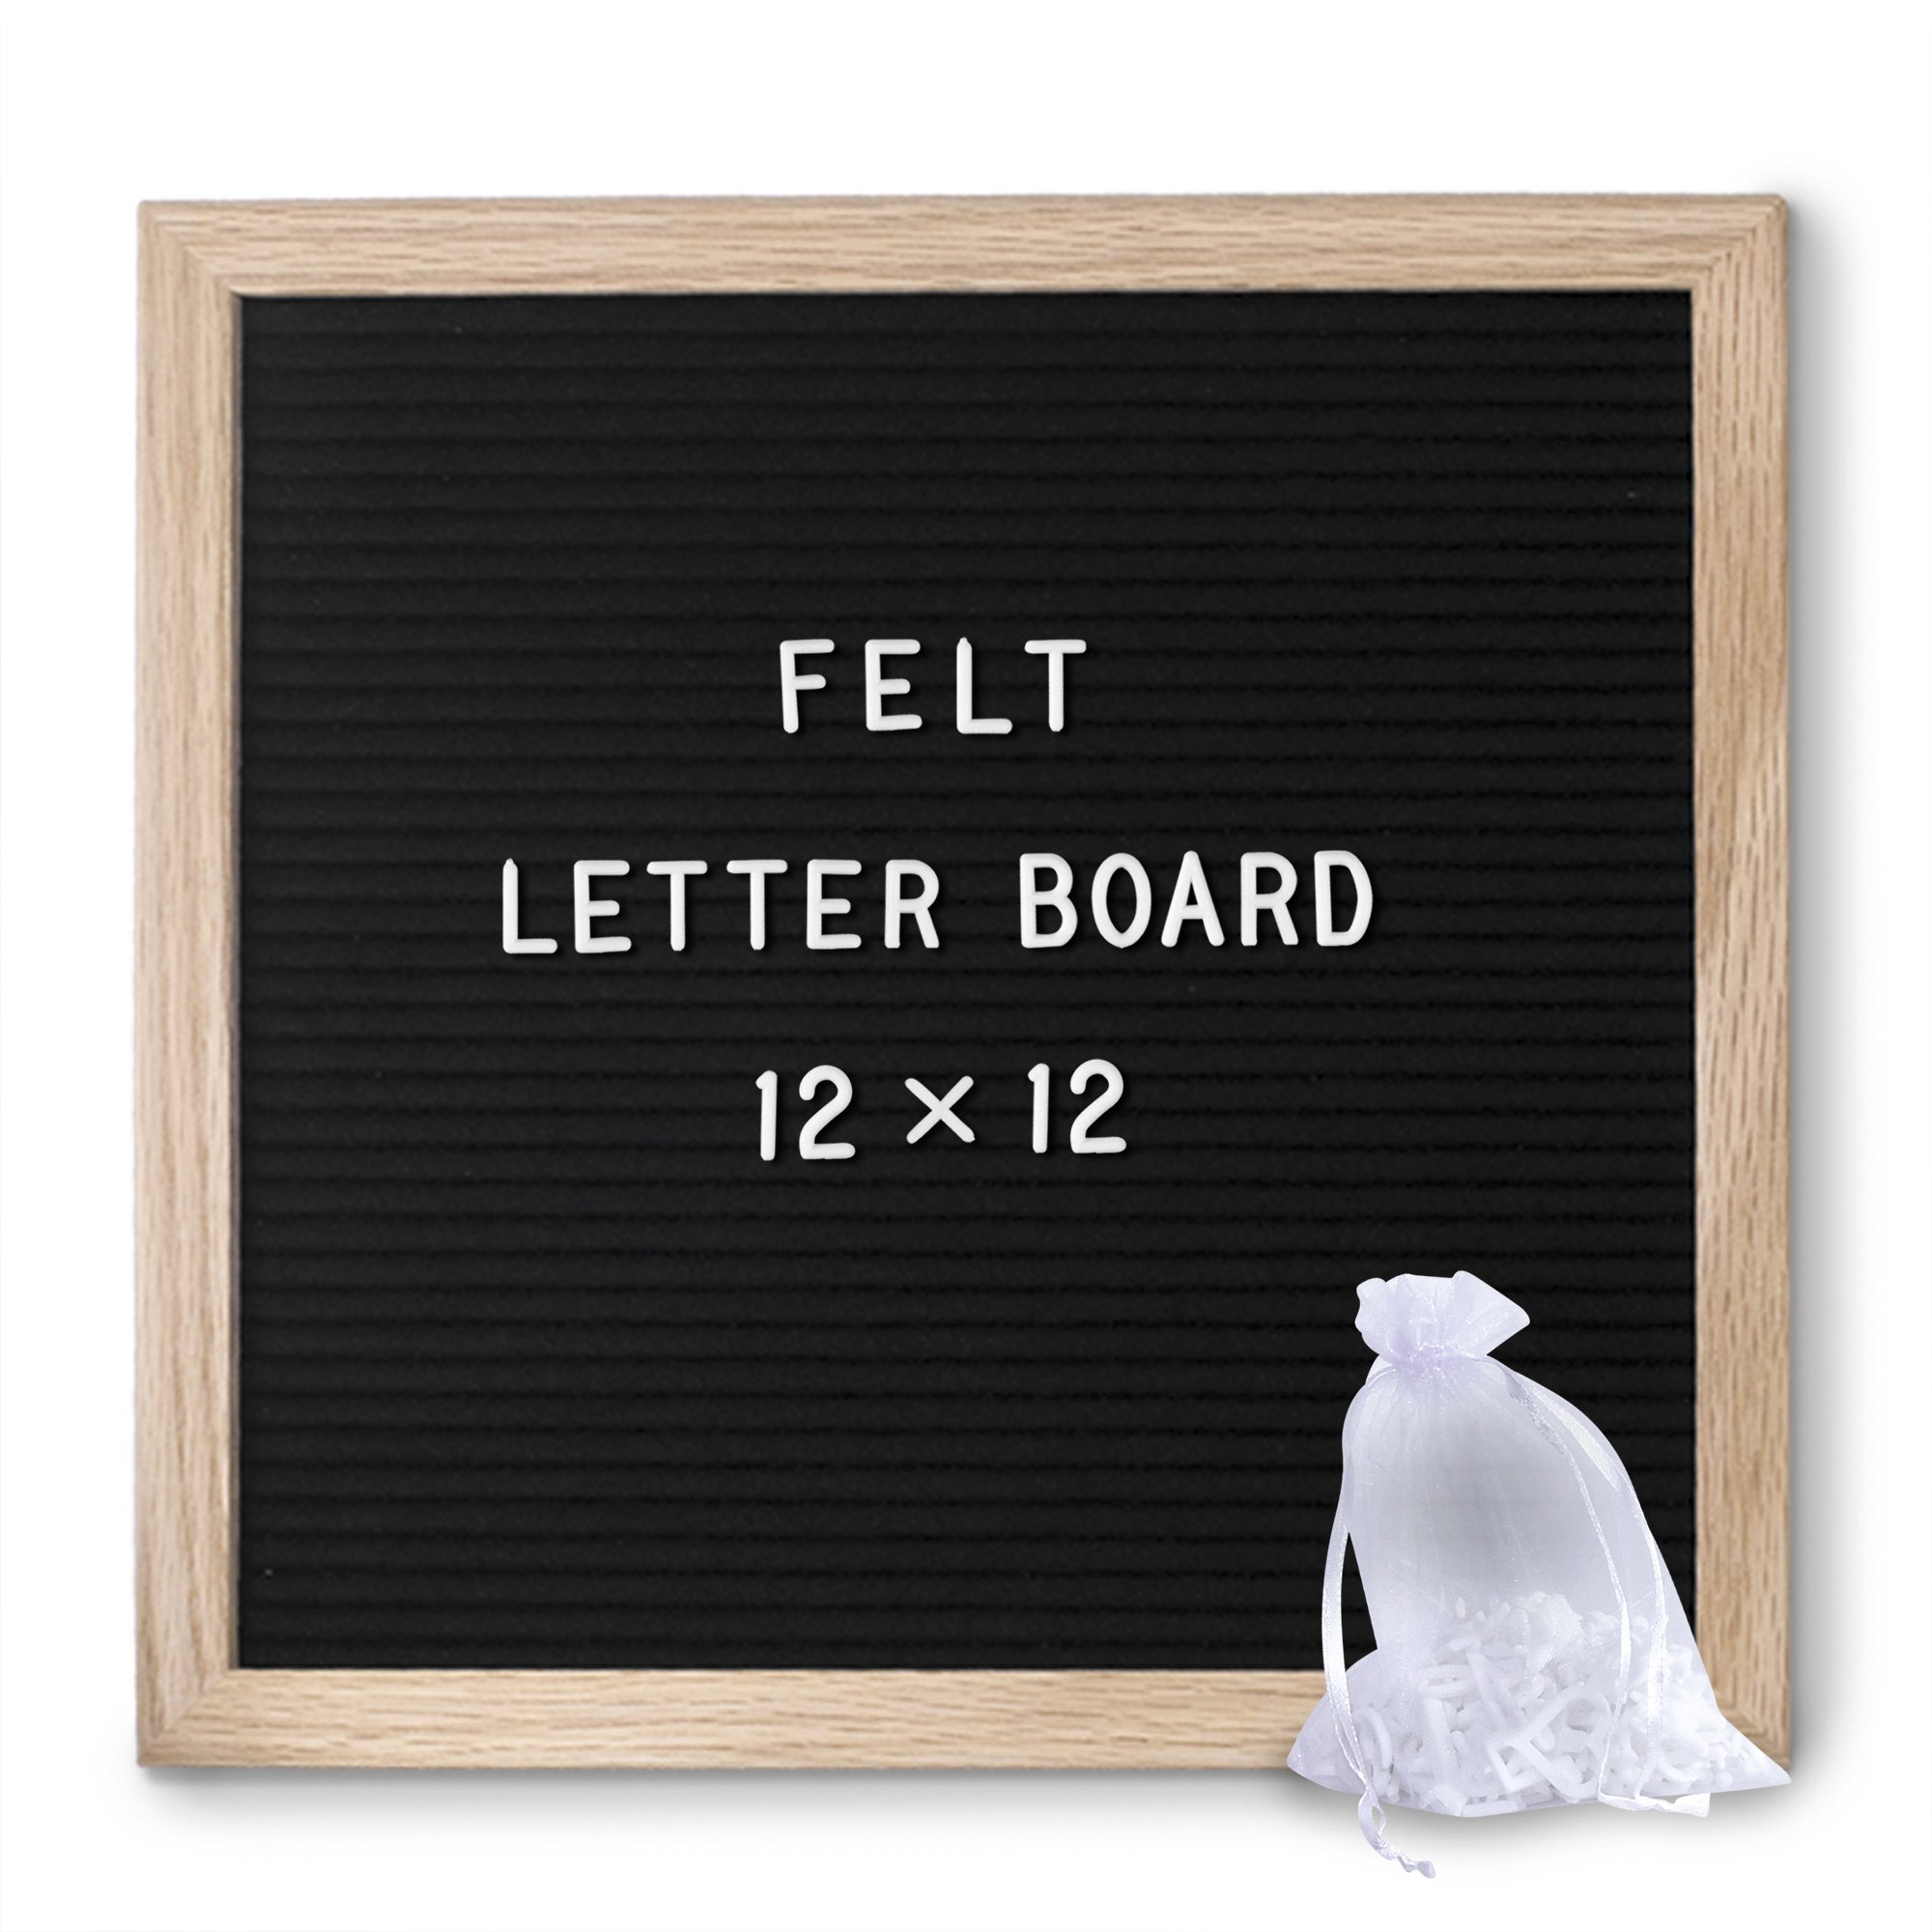 Felt Letter Board Black, Modern, 12x12 - Picture Stand and Wall Hook, Oak Wood Frame, Bonus Sheer Bag, 340 Letters, Special Characters, Emojis, Symbols - Perfect for Your Home, Office, Shops